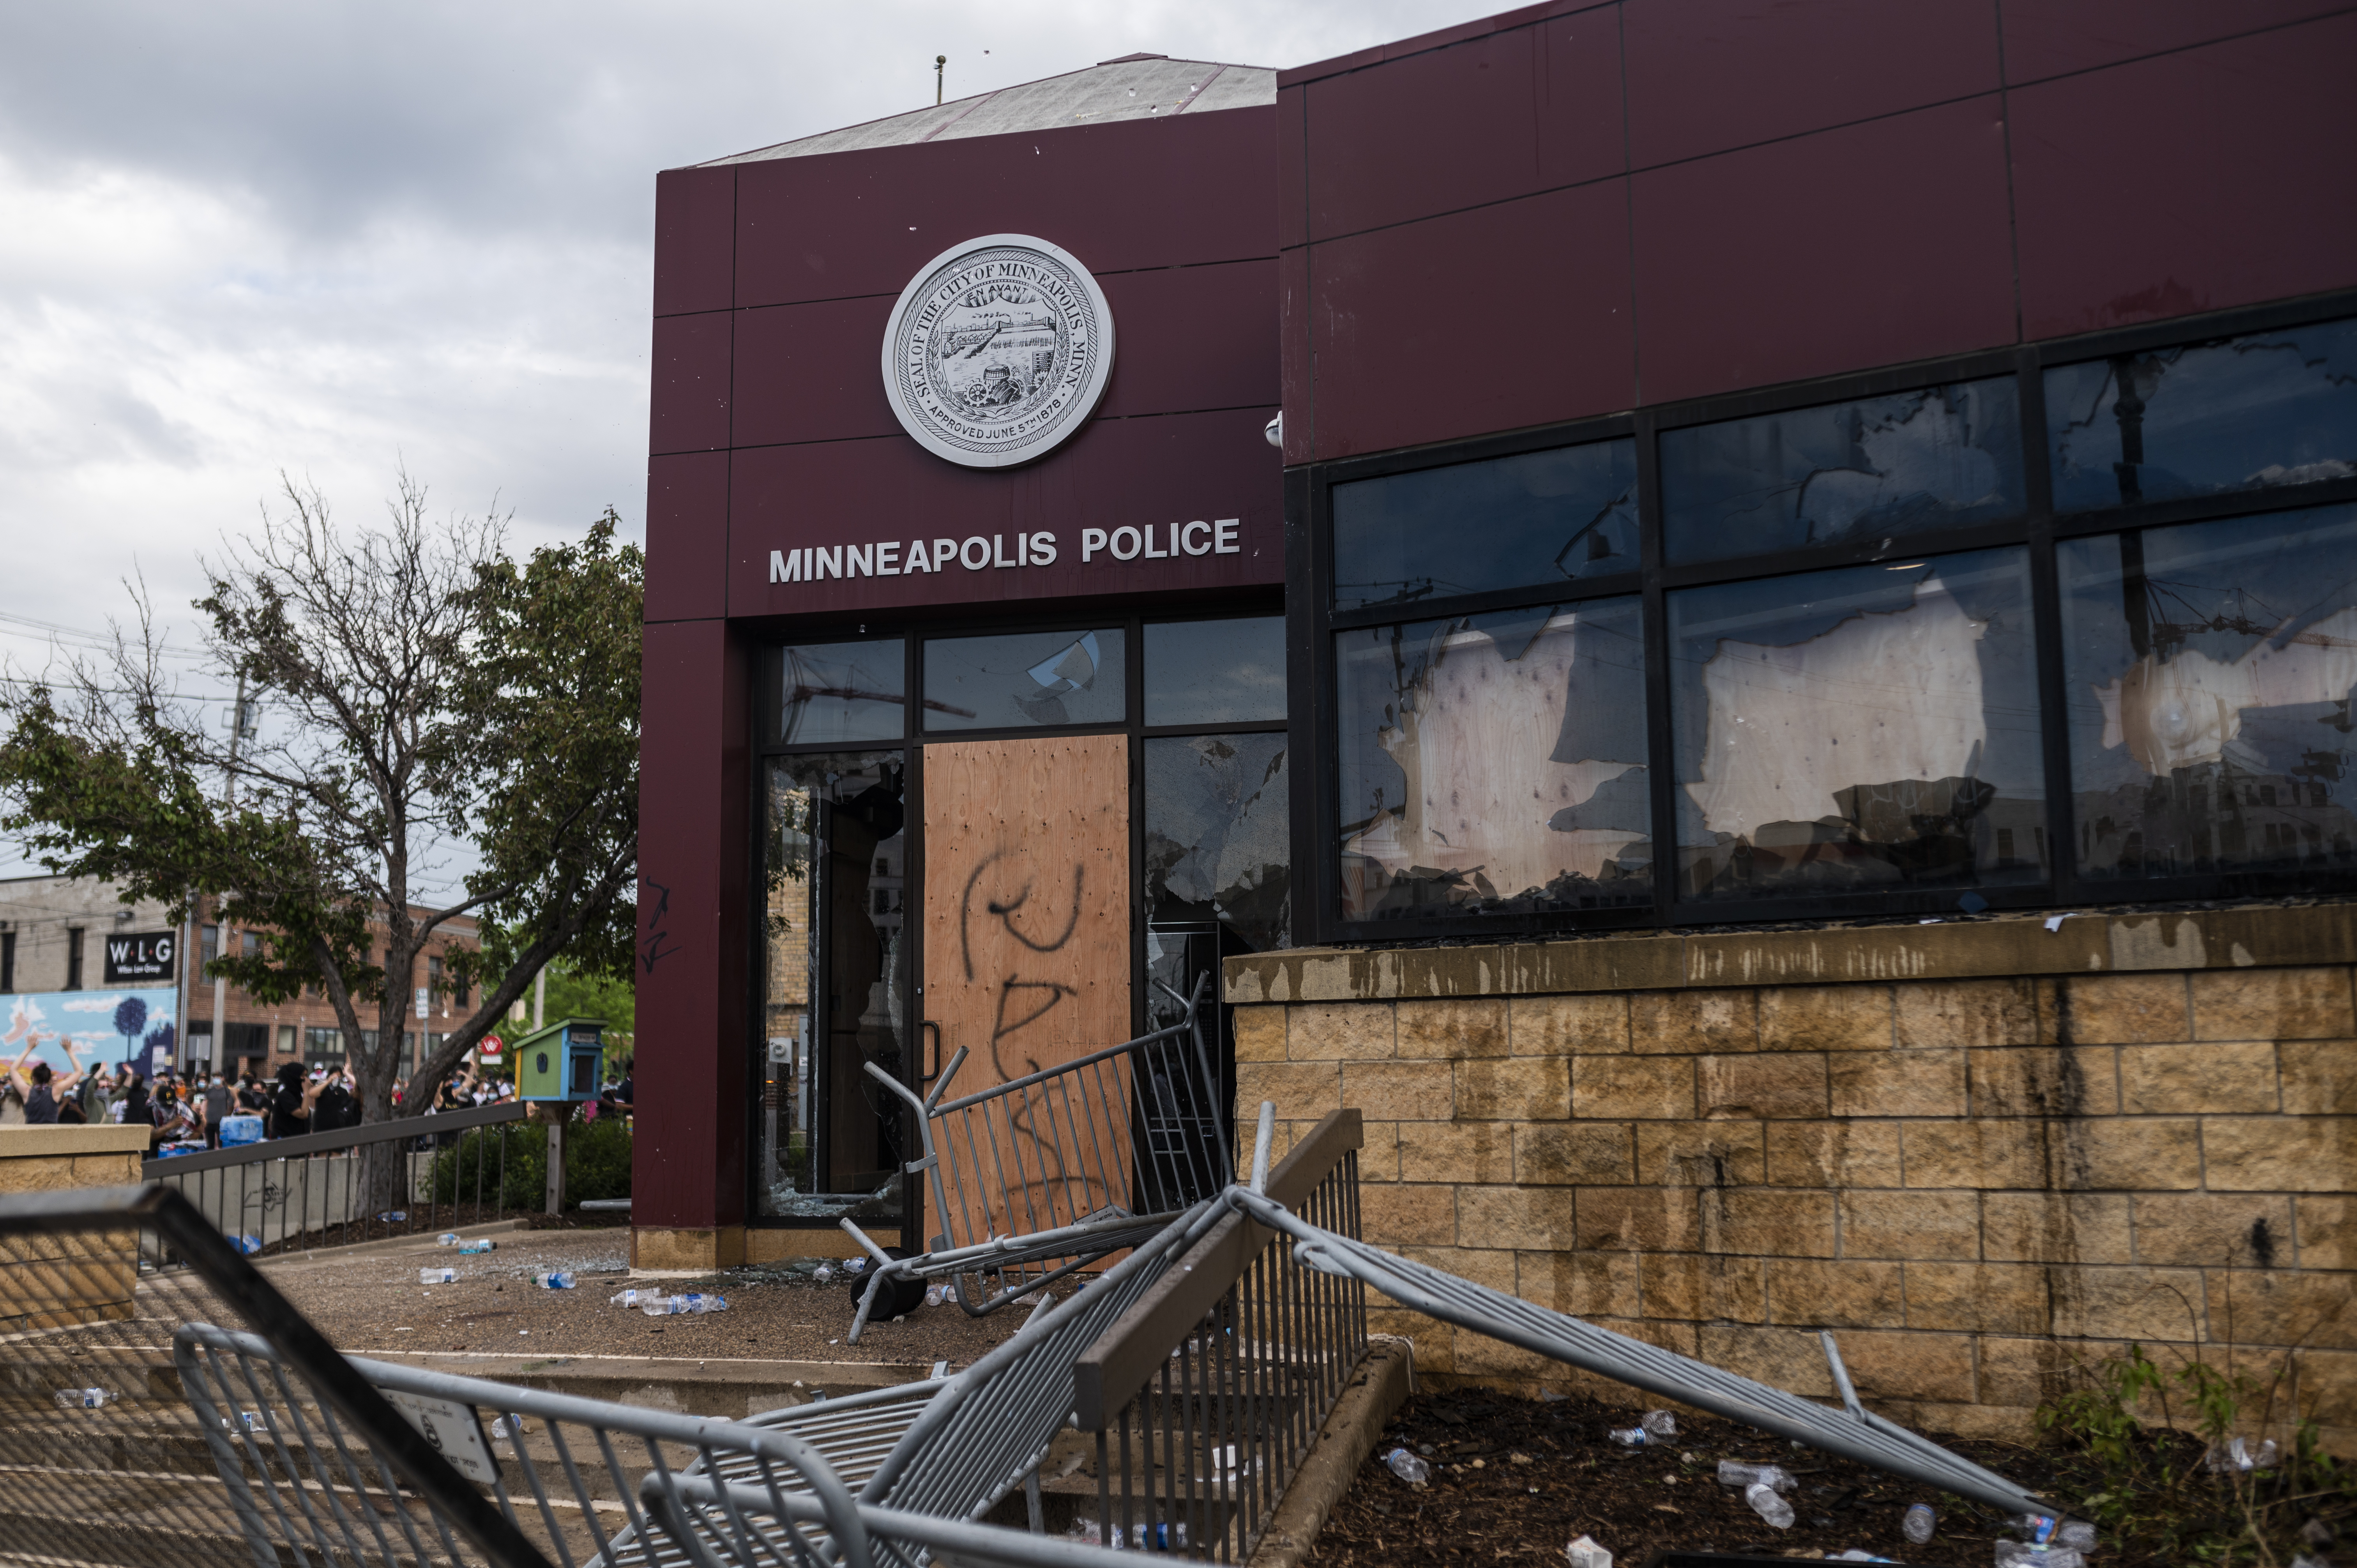 A view of the damage outside the 3rd Police Precinct building on May 27, 2020 in Minneapolis, Minnesota. (Stephen Maturen/Getty Images)